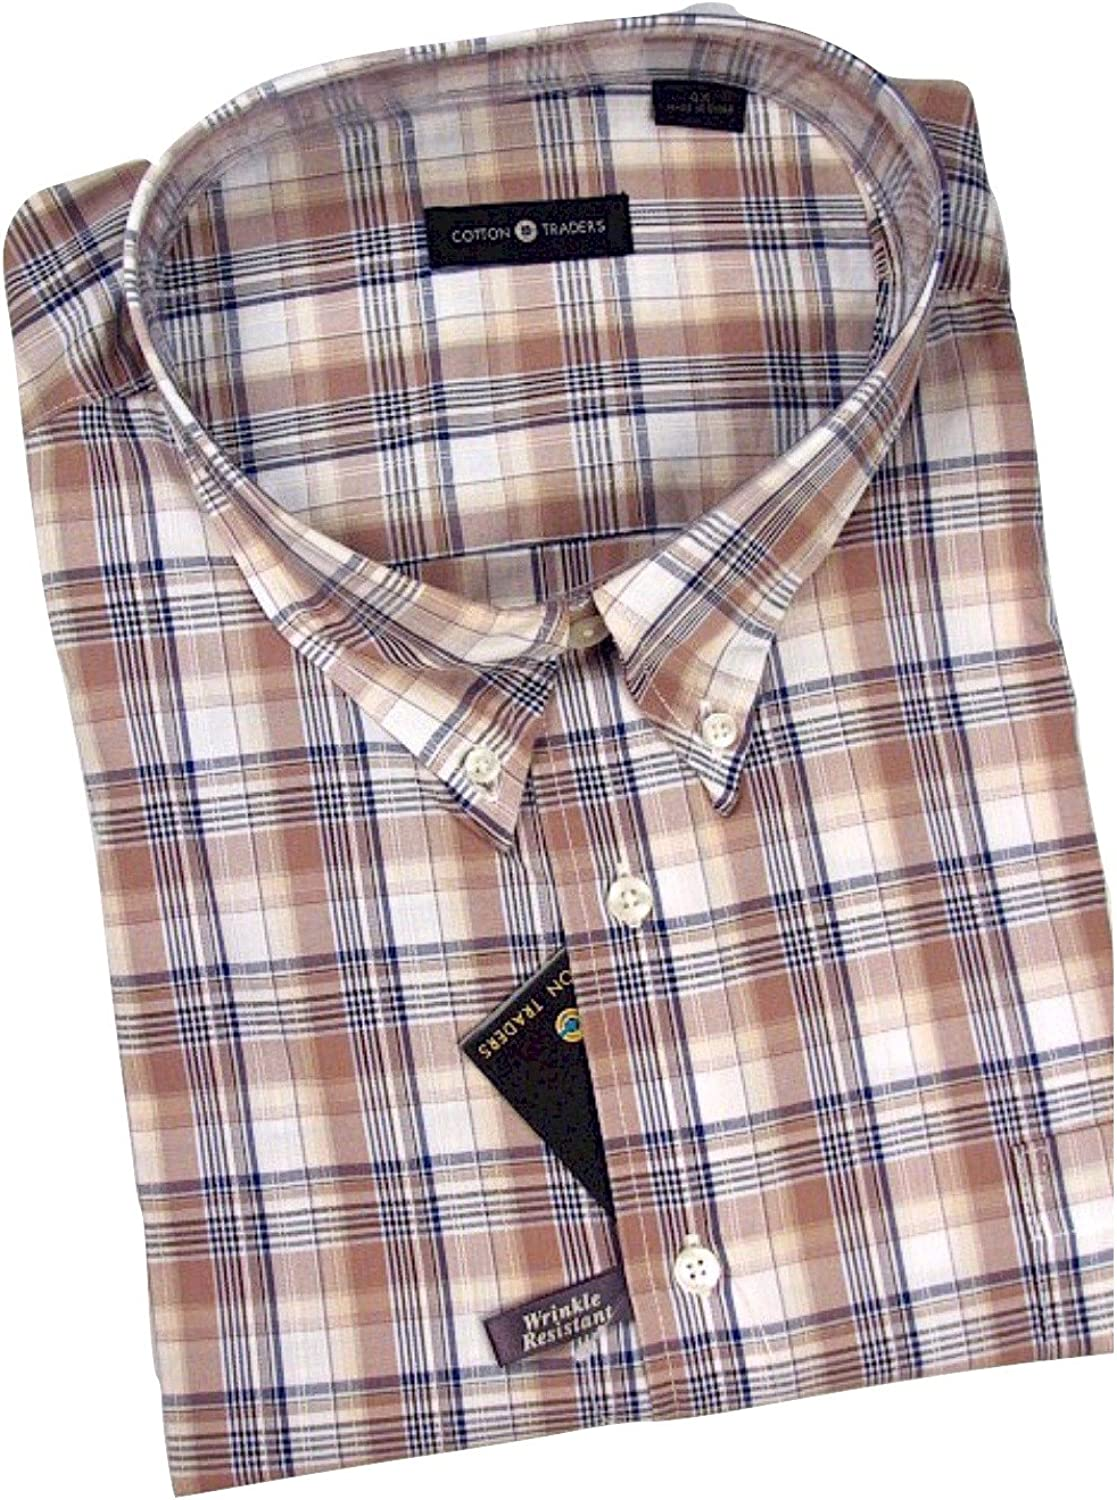 Cotton Traders Big and Tall Mens Short Sleeve Easy Care Cotton Shirts